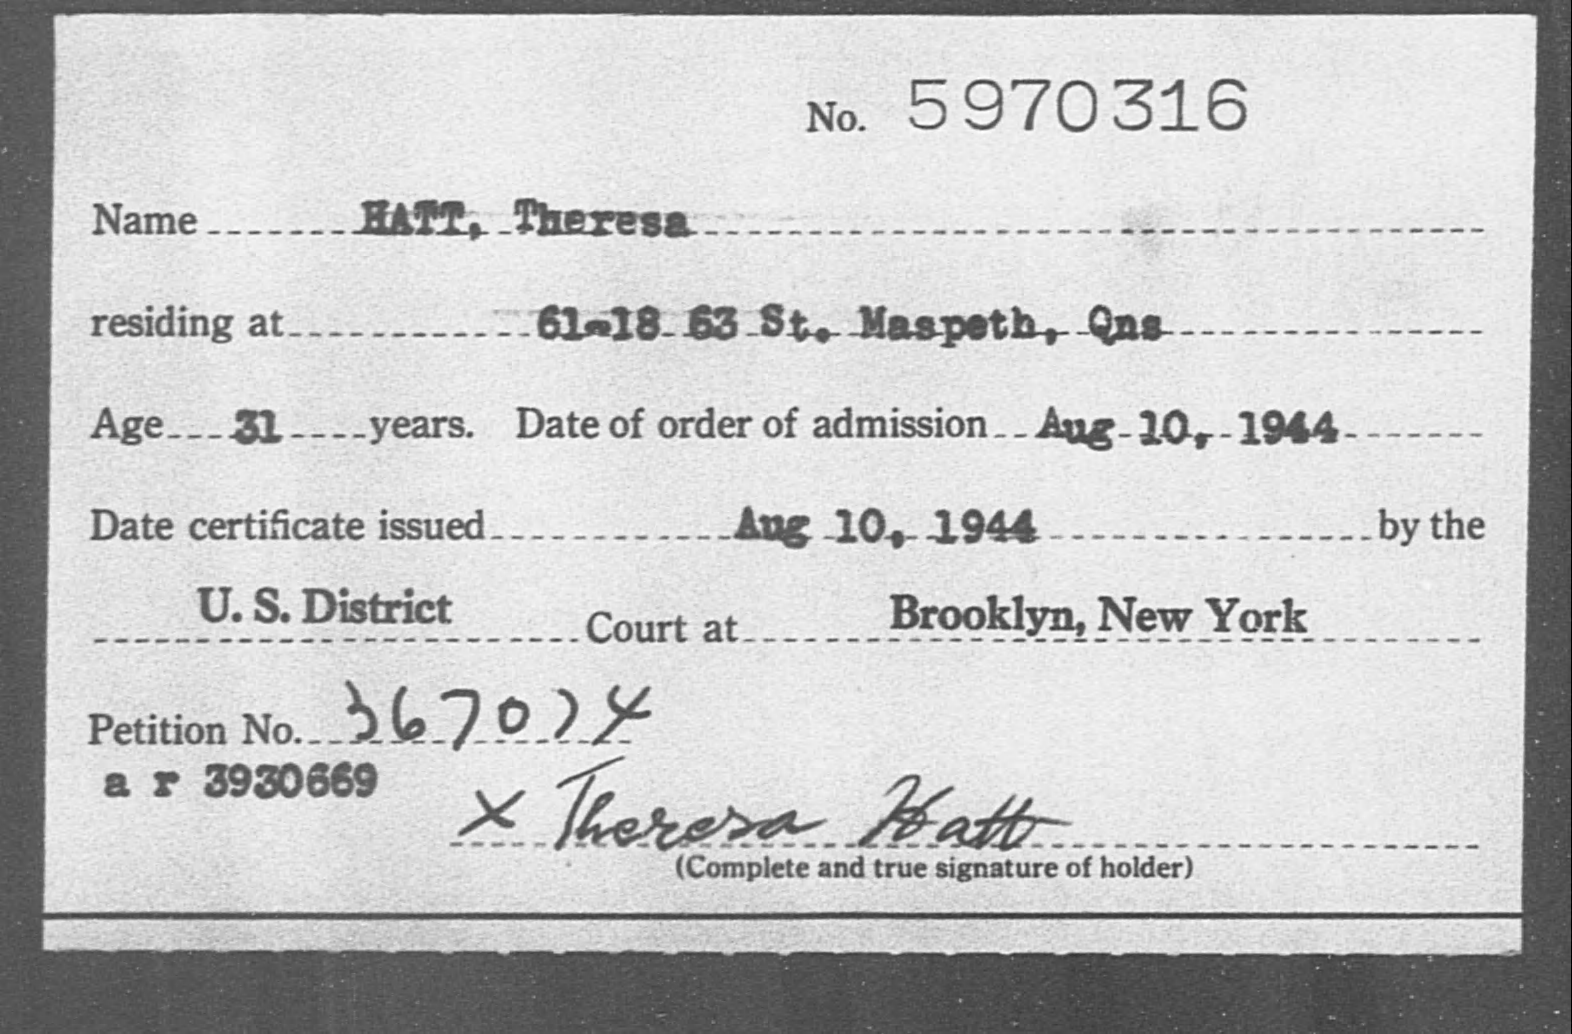 HATT, Theresa - Born: [BLANK], Naturalized: 1944